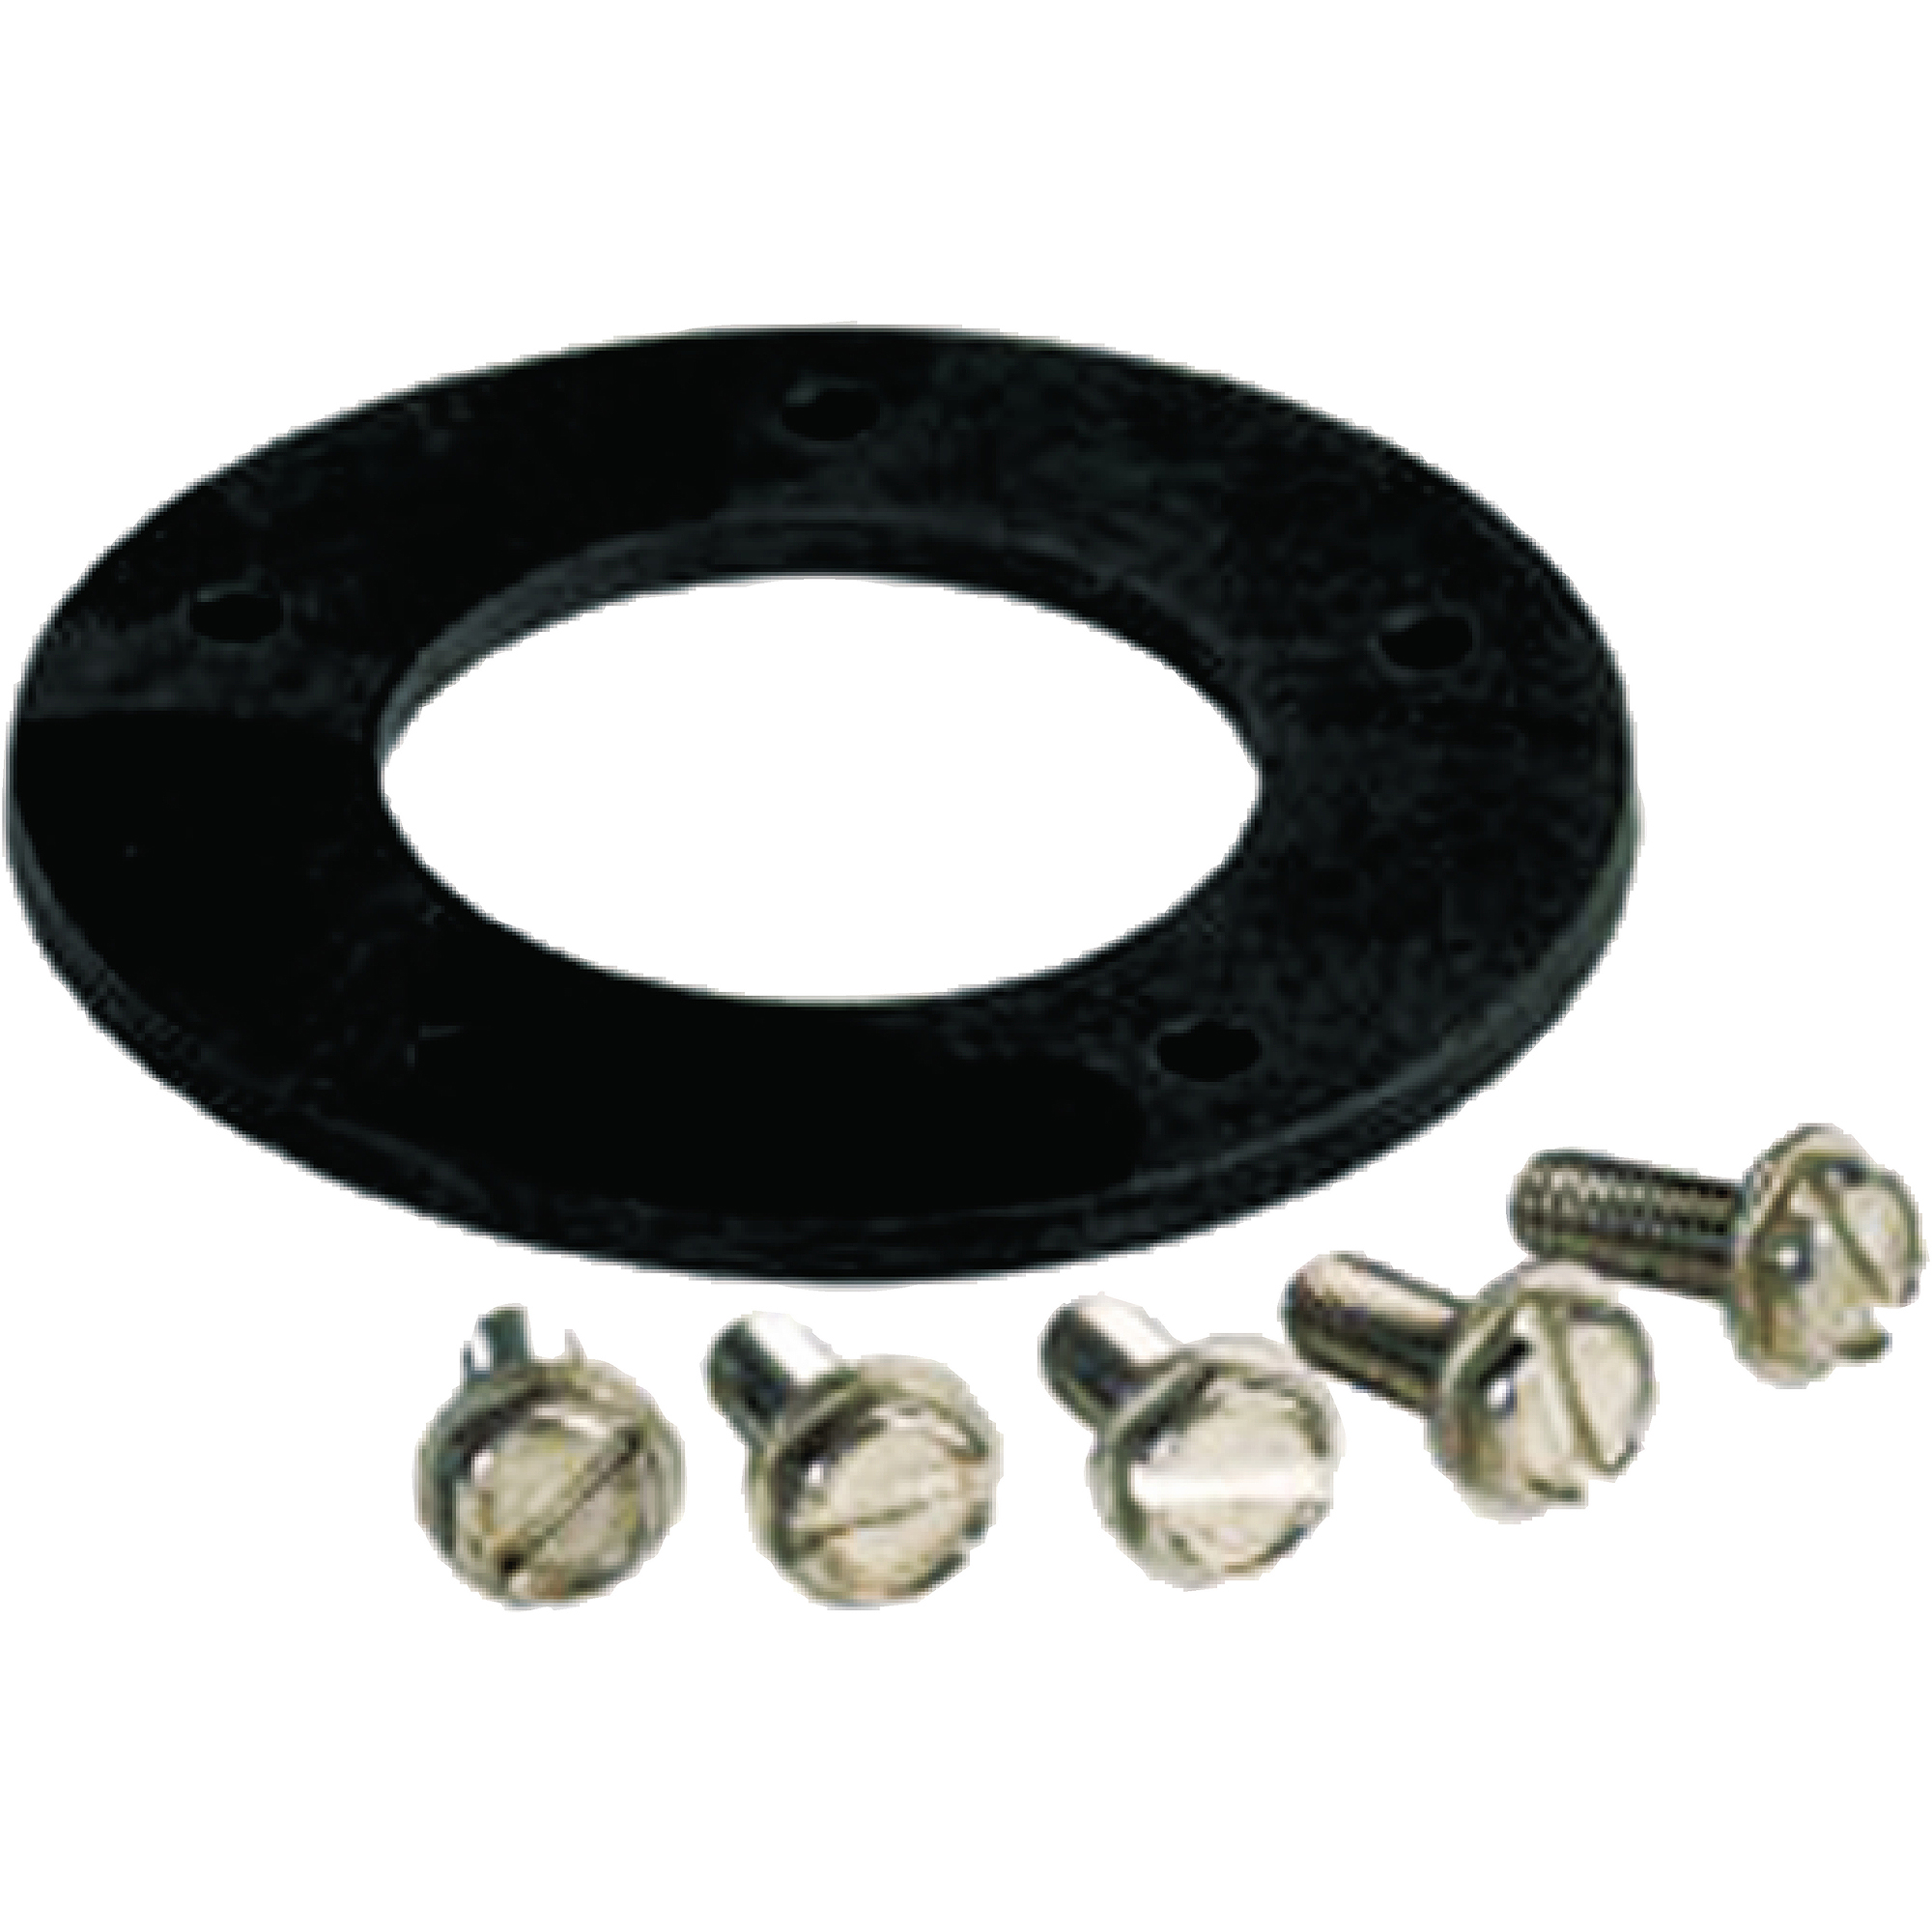 Moeller Universal 5-Hole Gasket with Fine/Course Screws and Washers for Sending Units